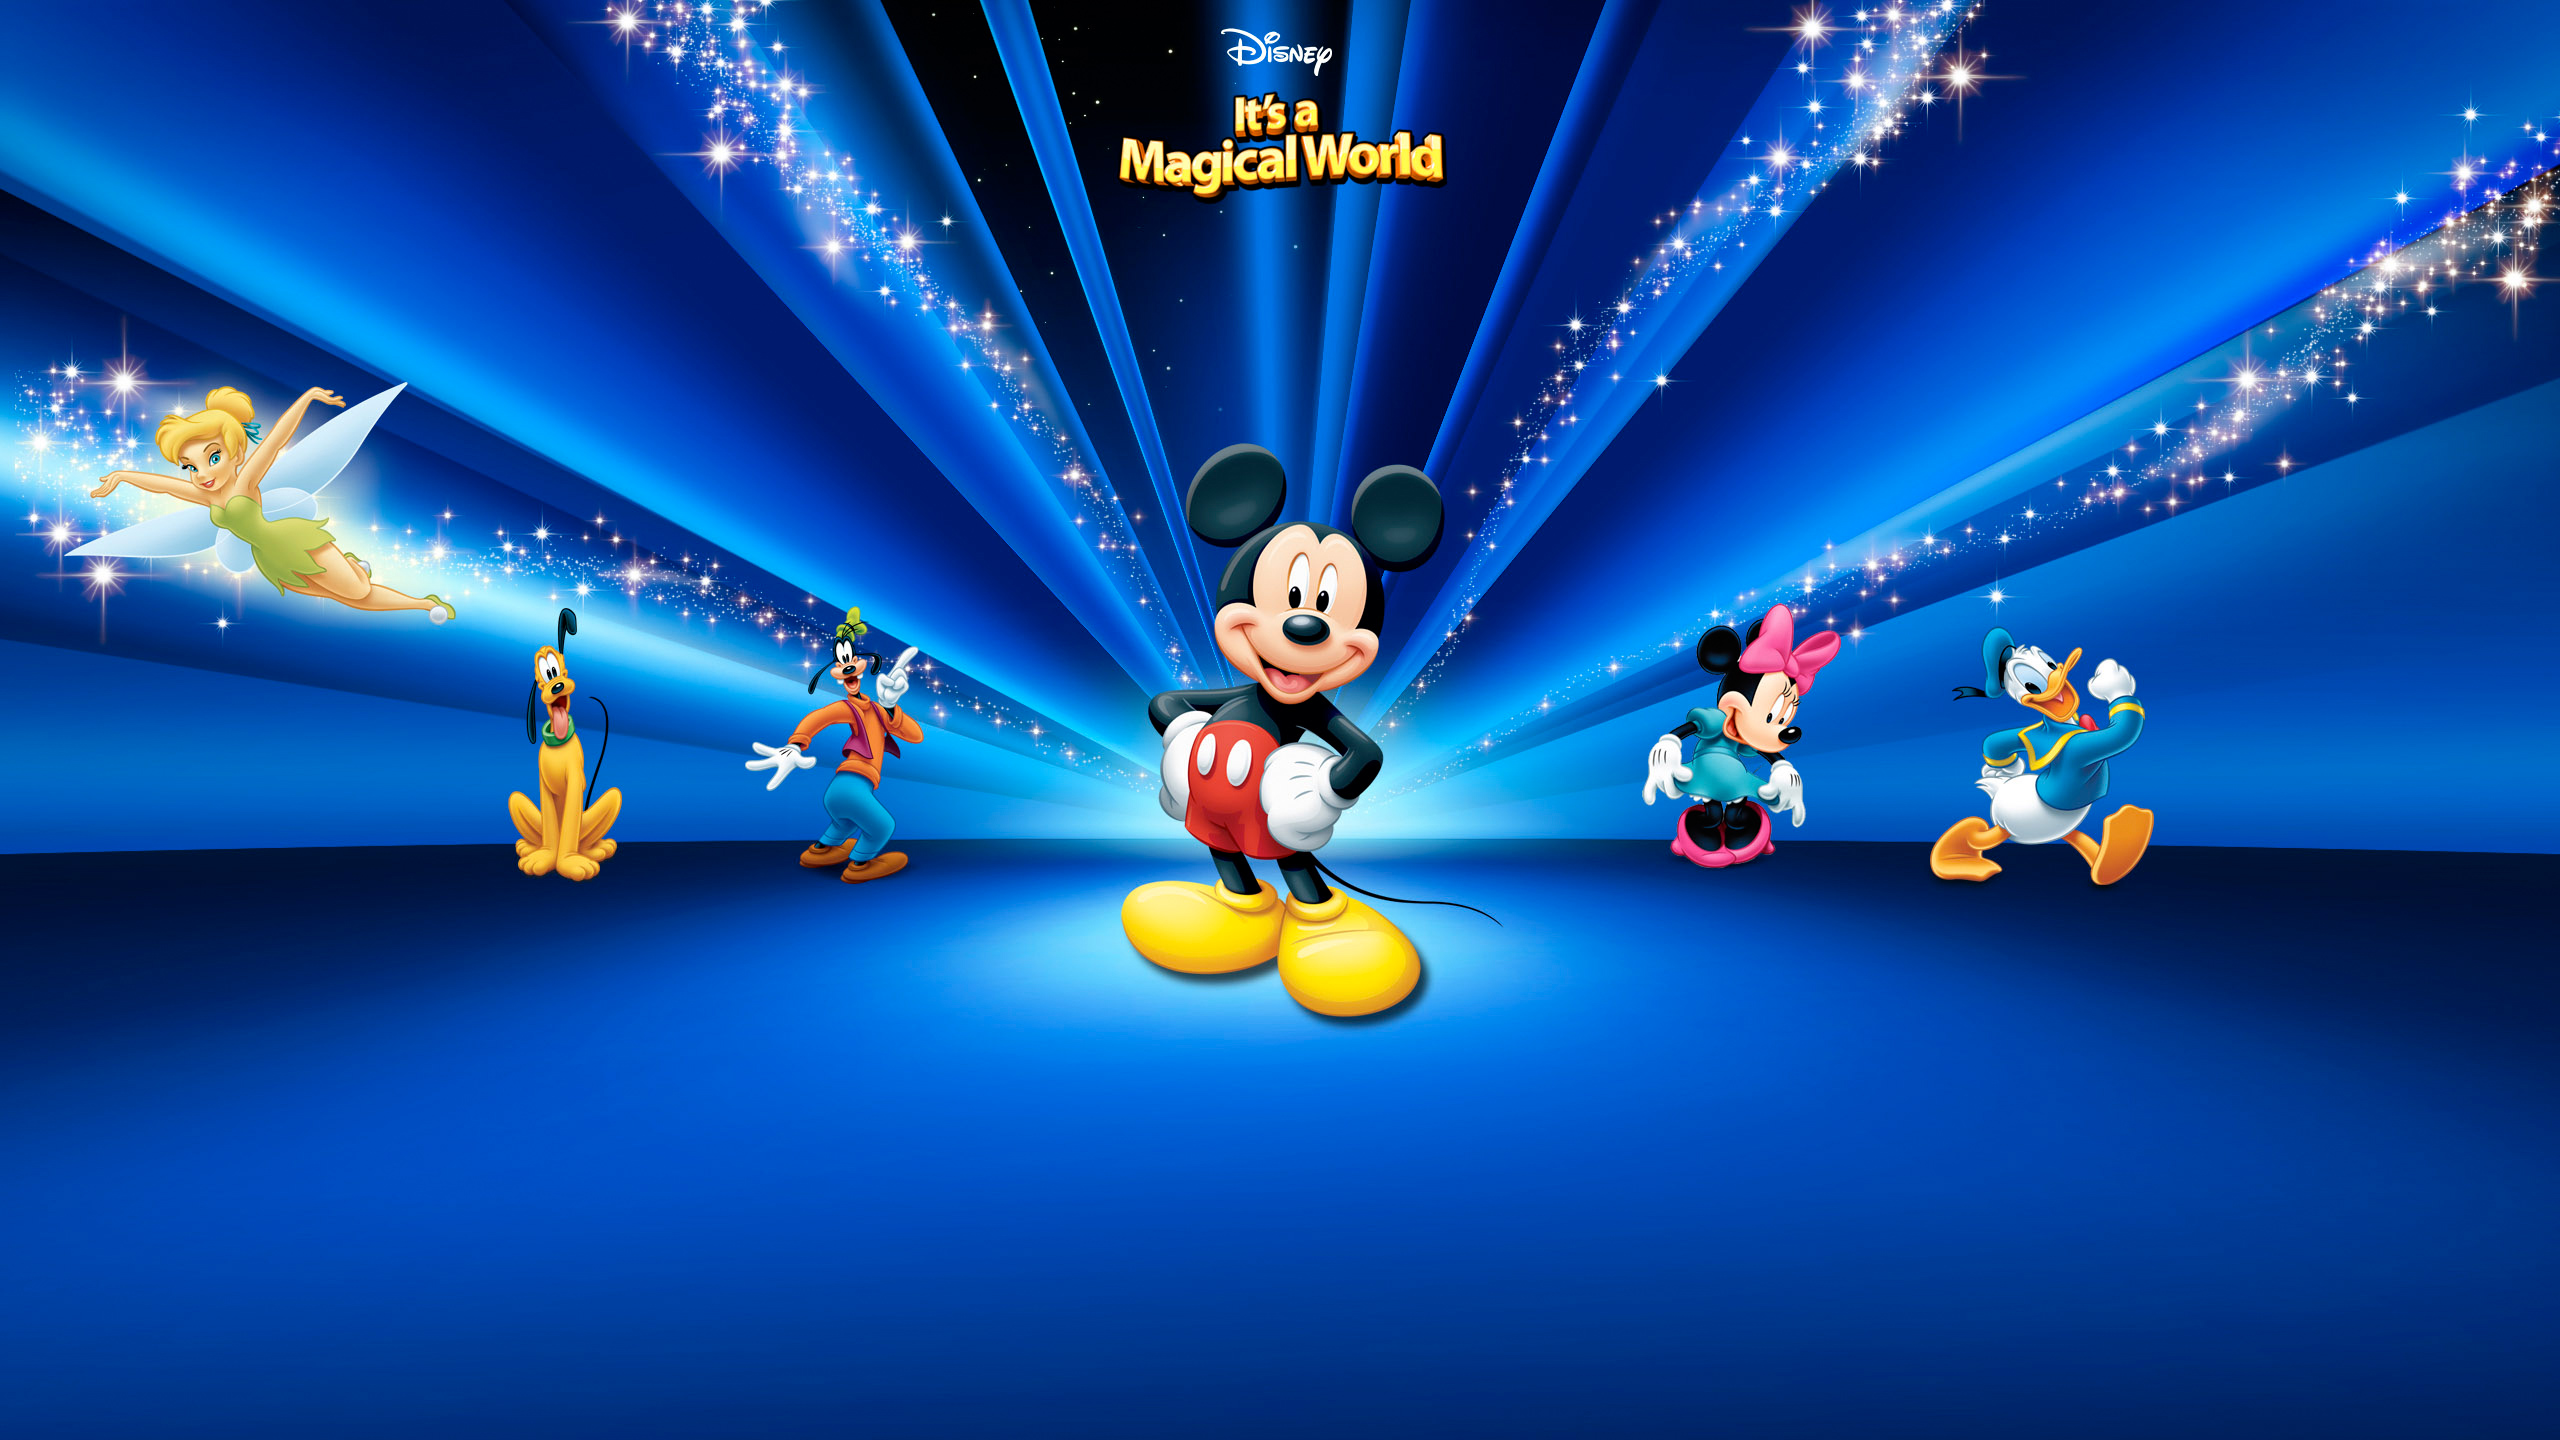 Disney Mickey Mouse World 1151.15 Kb